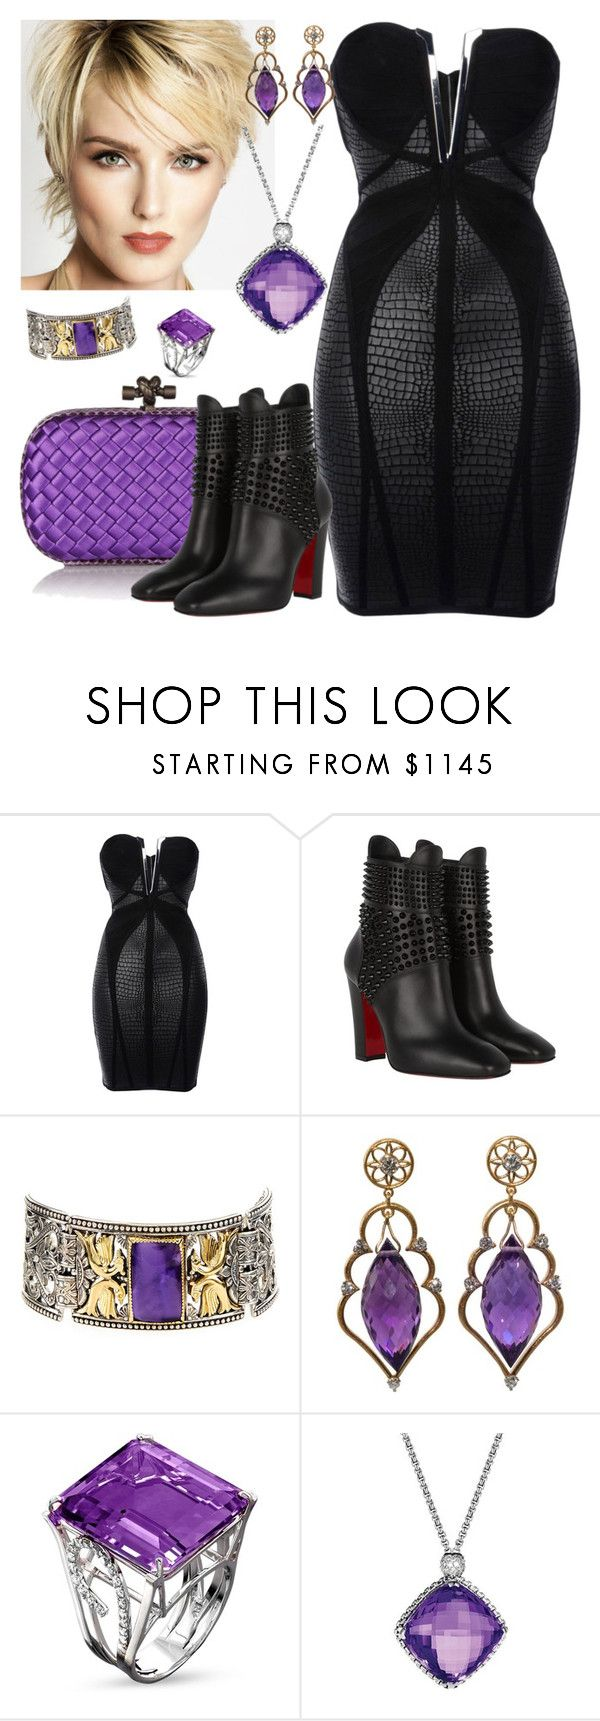 """Amethyst Rock"" by kaylyn-80864 ❤ liked on Polyvore featuring Hervé Léger, Bottega Veneta, Christian Louboutin, Konstantino, Wayne Smith Jewels and David Yurman"